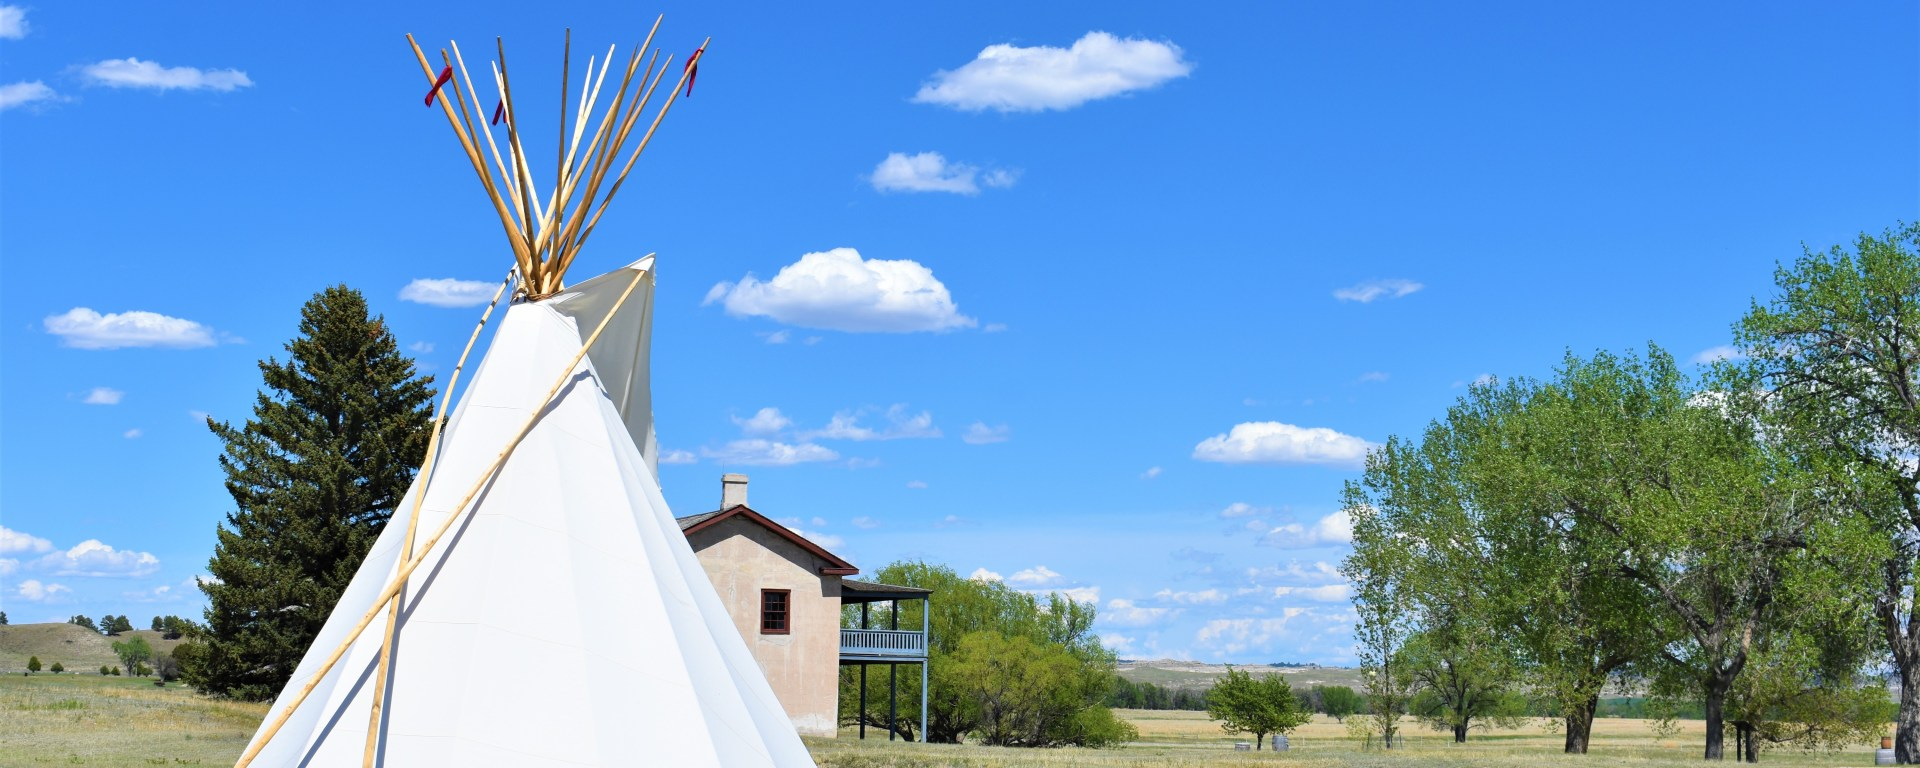 Tipi on the plains of Fort Laramie, Wyoming. Blue sky with few white clouds